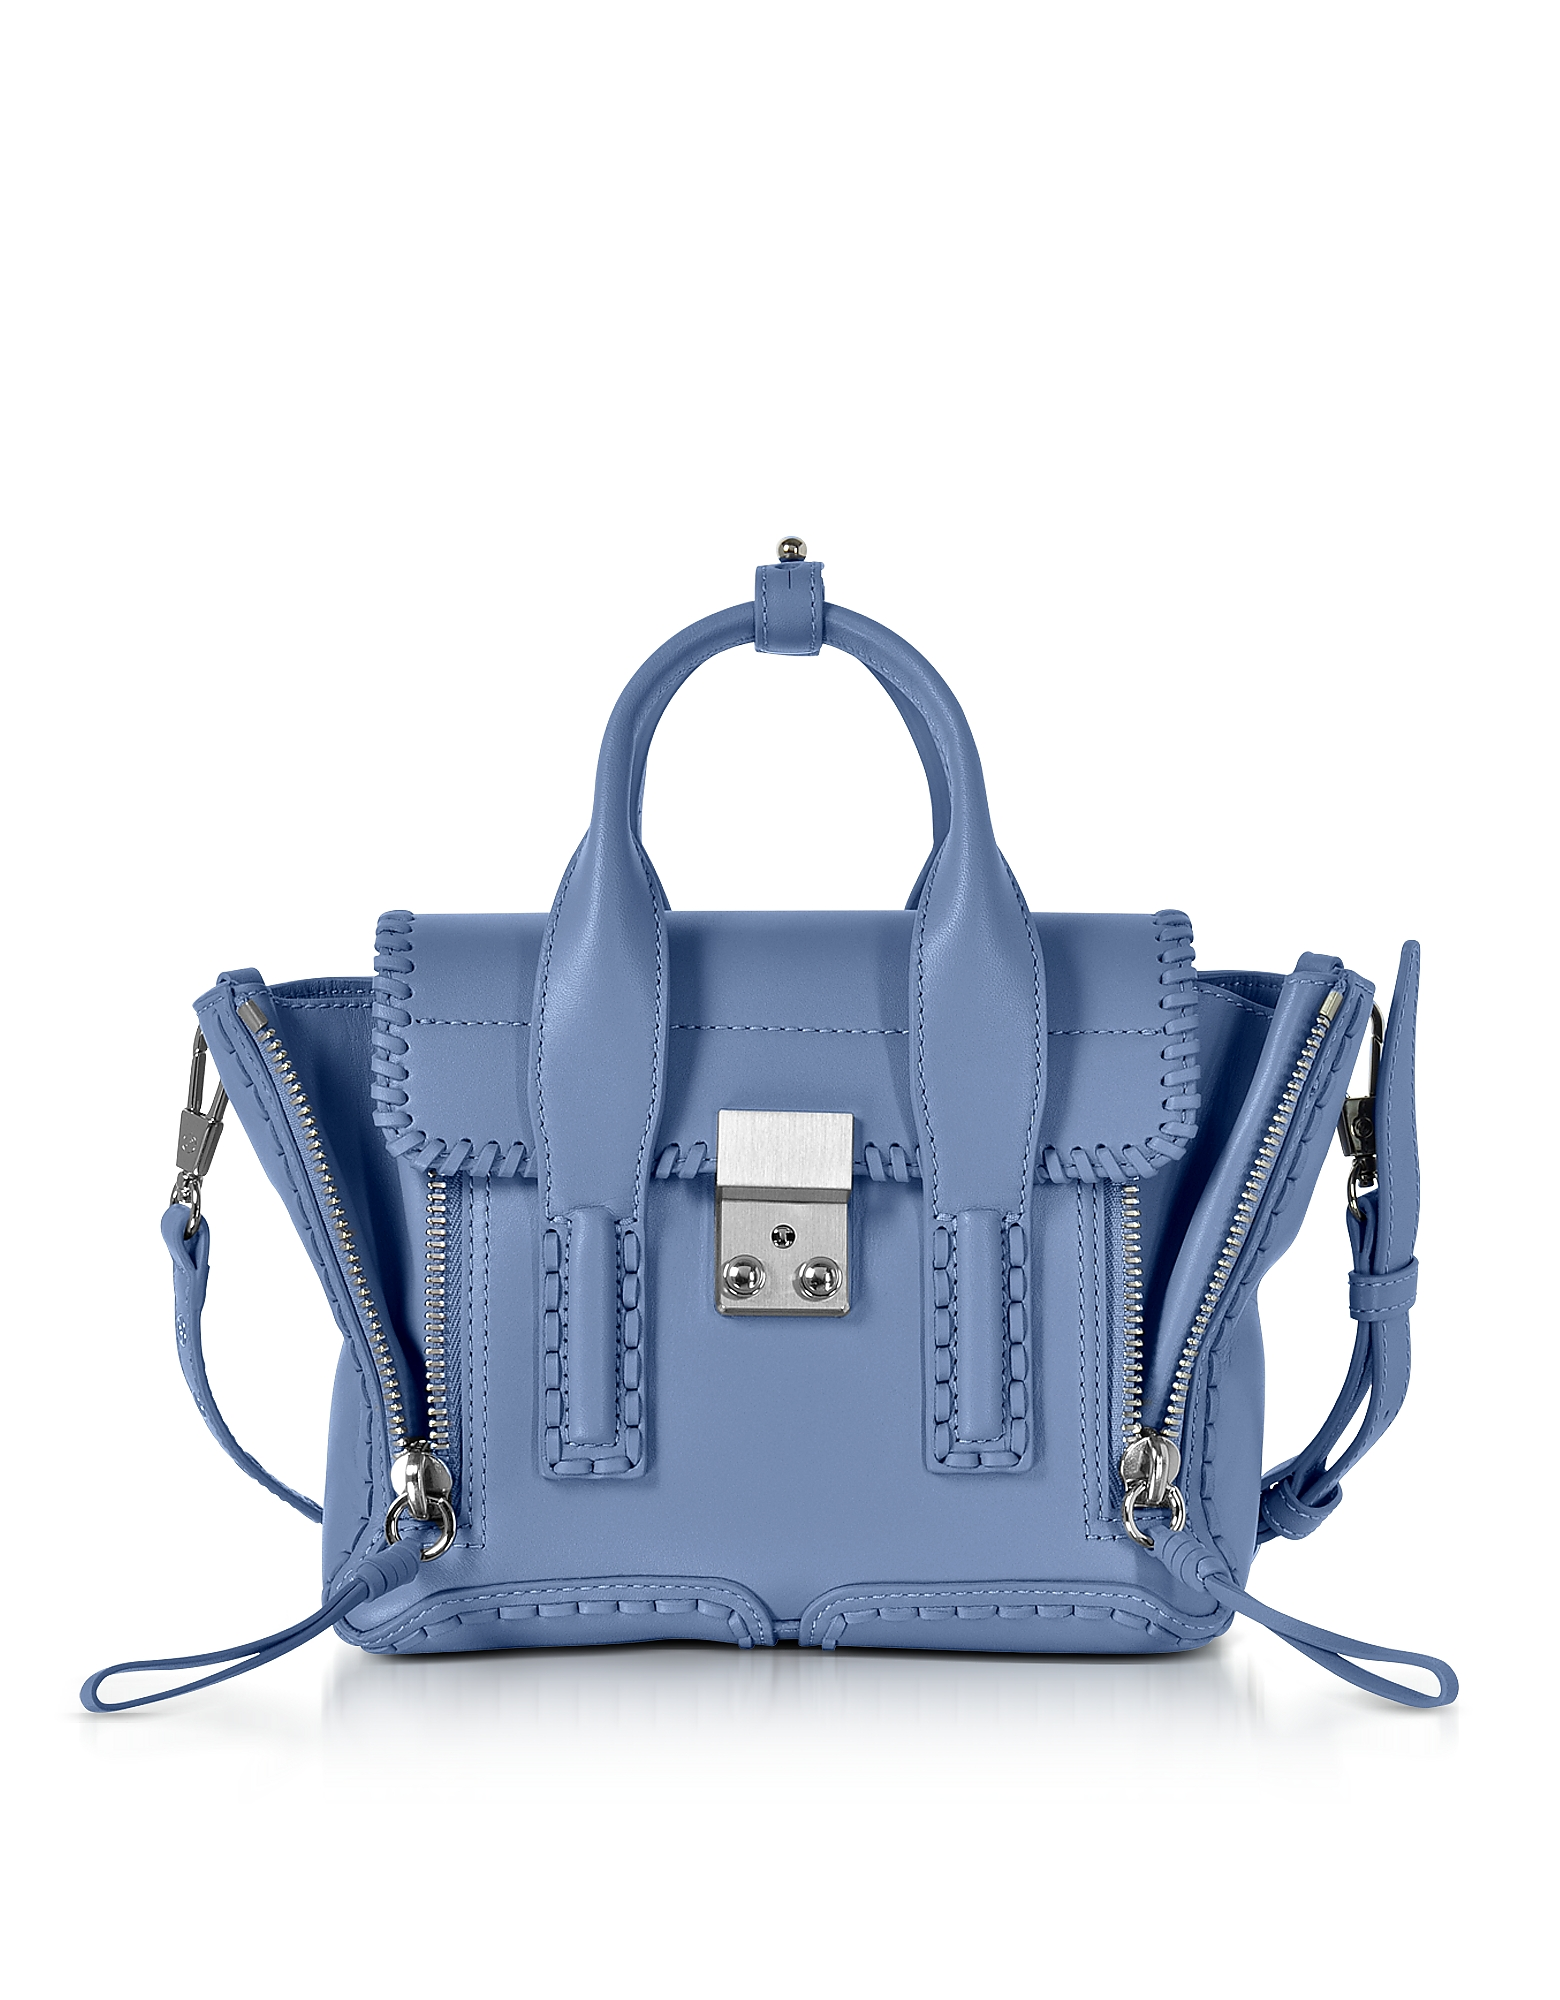 3.1 Phillip Lim Handbags, Pashli Periwinkle Leather Mini Satchel Bag